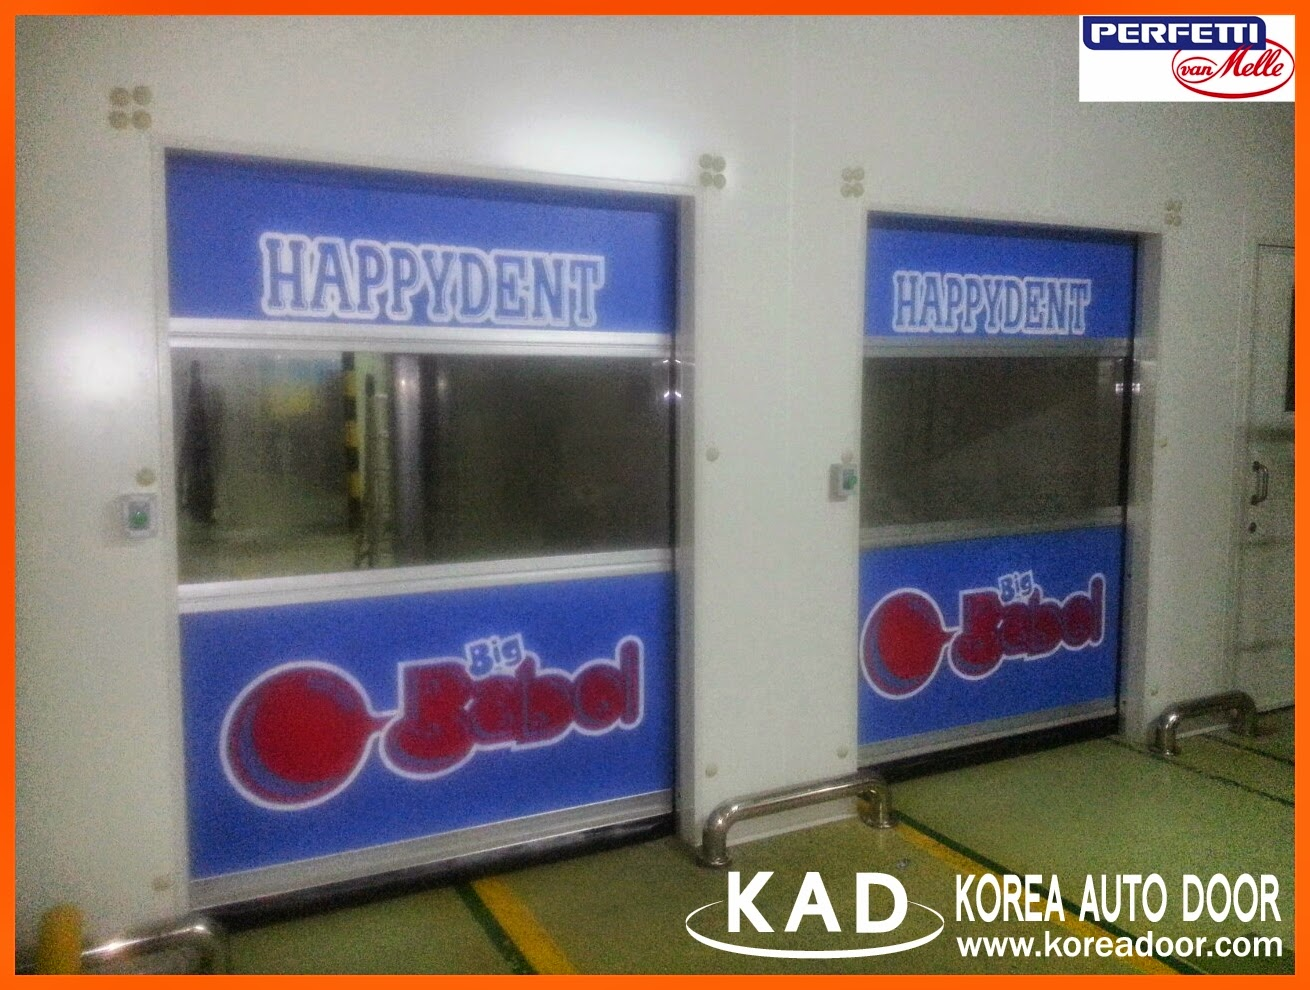 This is a picture of kad high speed doors built in a happydent and mentos plant.